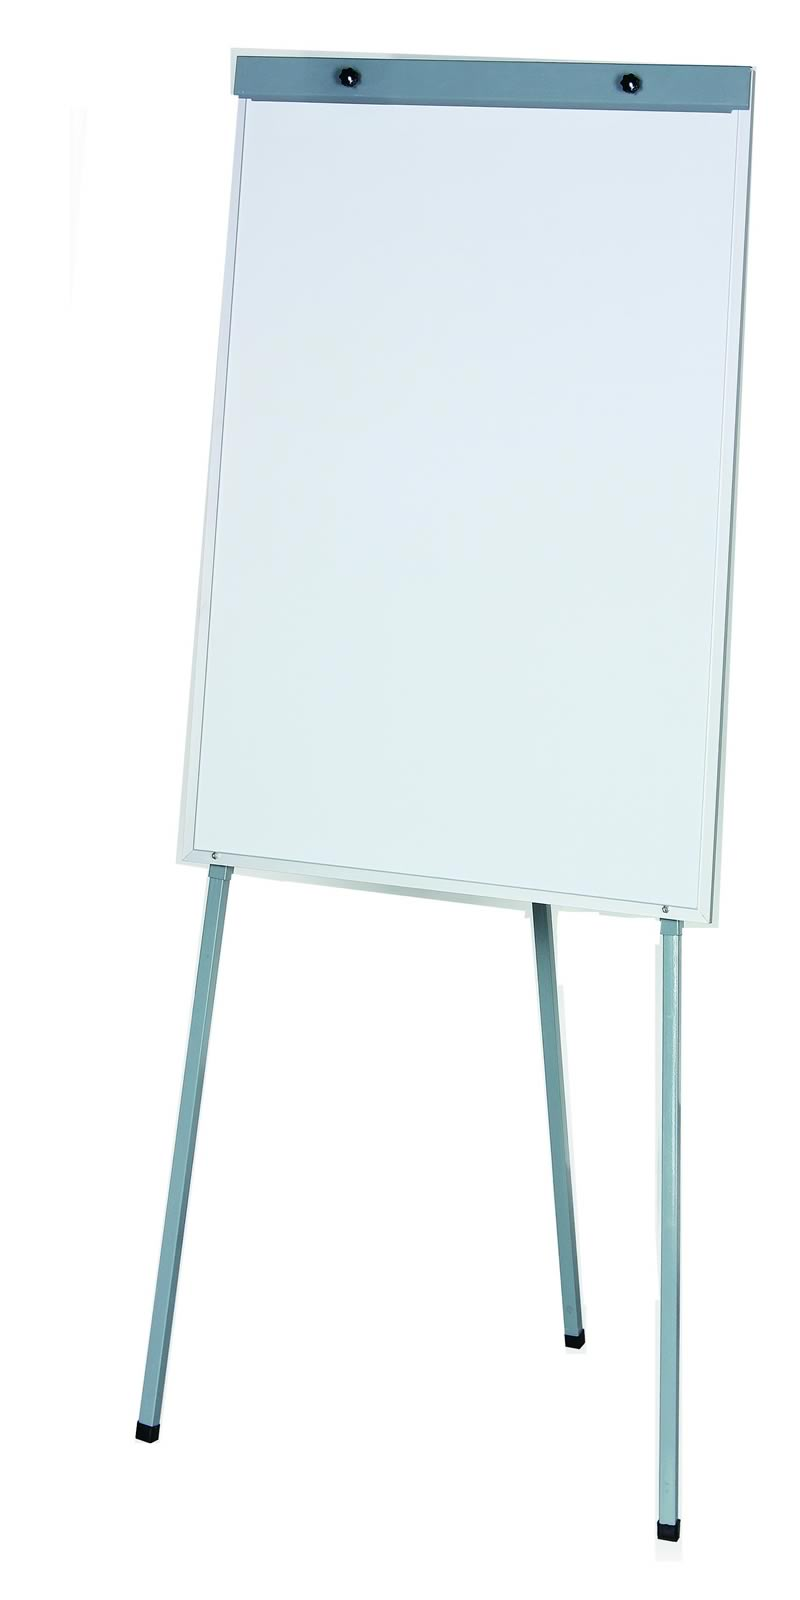 Adjustable Flip Chart With Tripod Stand